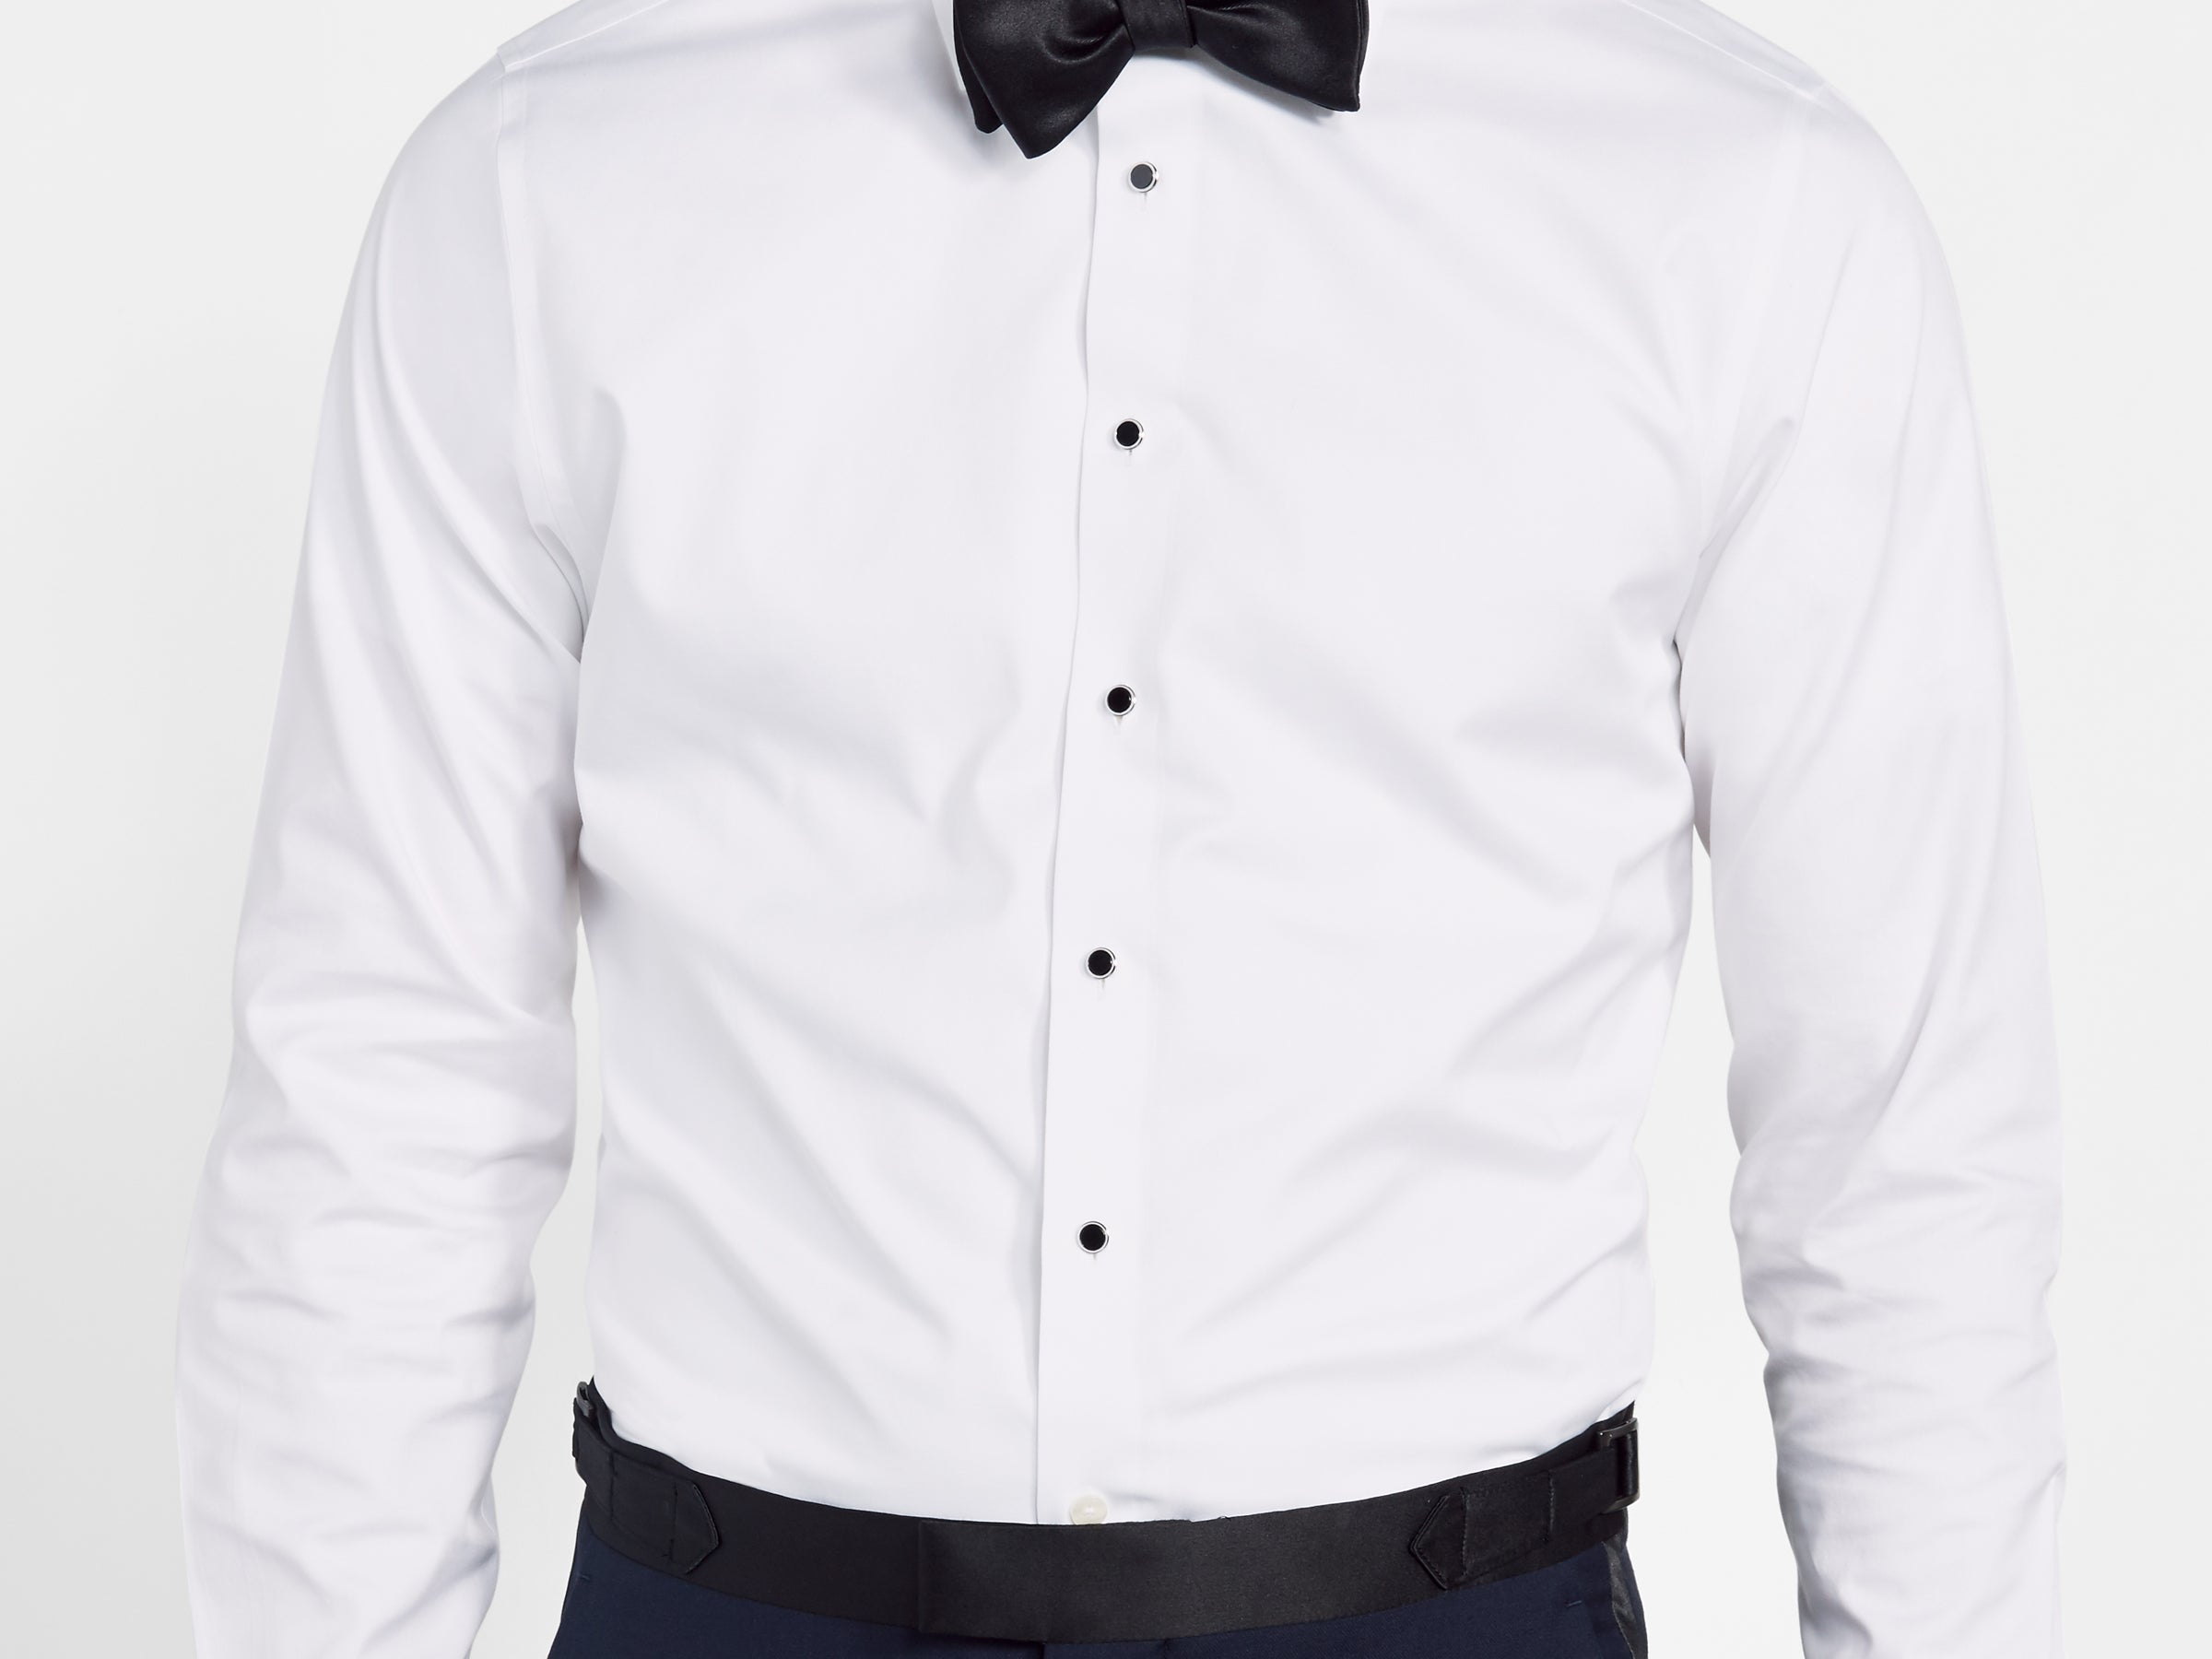 Black shirt with white buttons south park t shirts for Tuxedo shirt black buttons